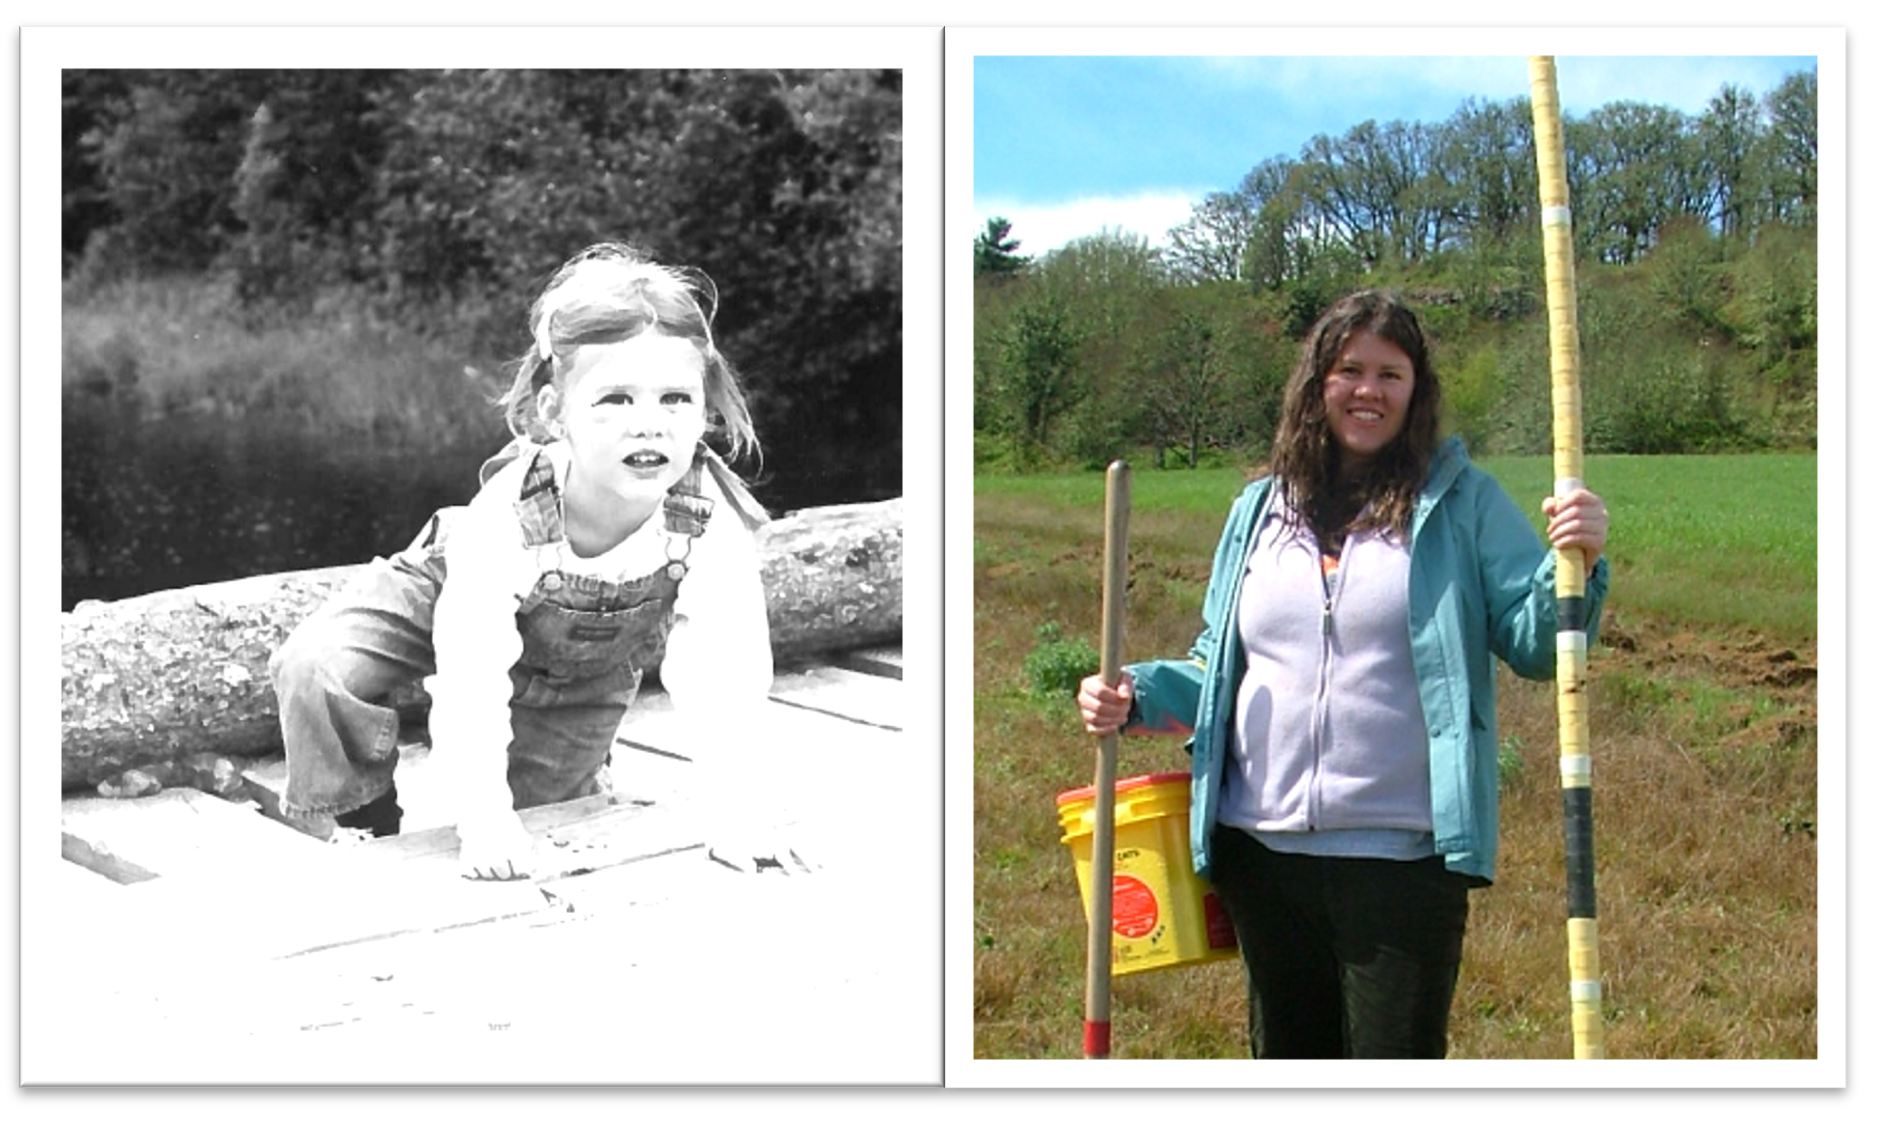 Heath as a child wearing overalls climbing and as an adult taking soil samples